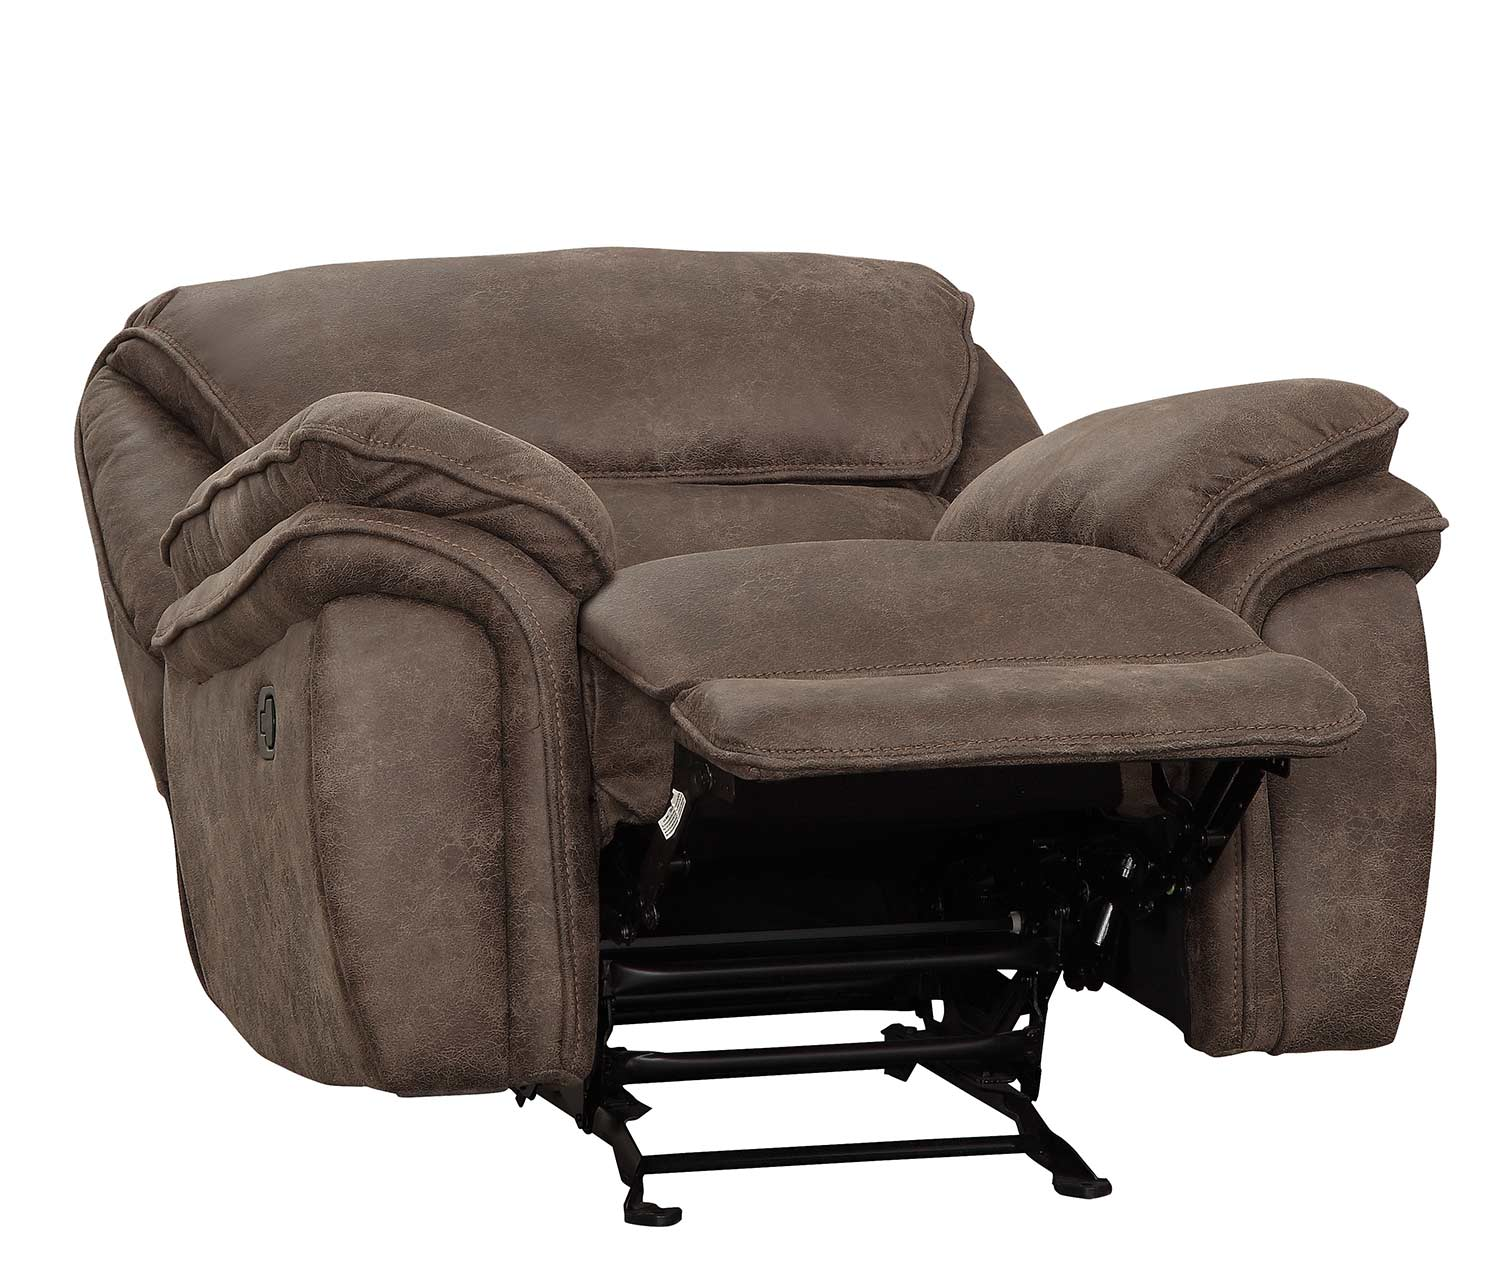 Homelegance Hadden Glider Reclining Chair - Dark Brown